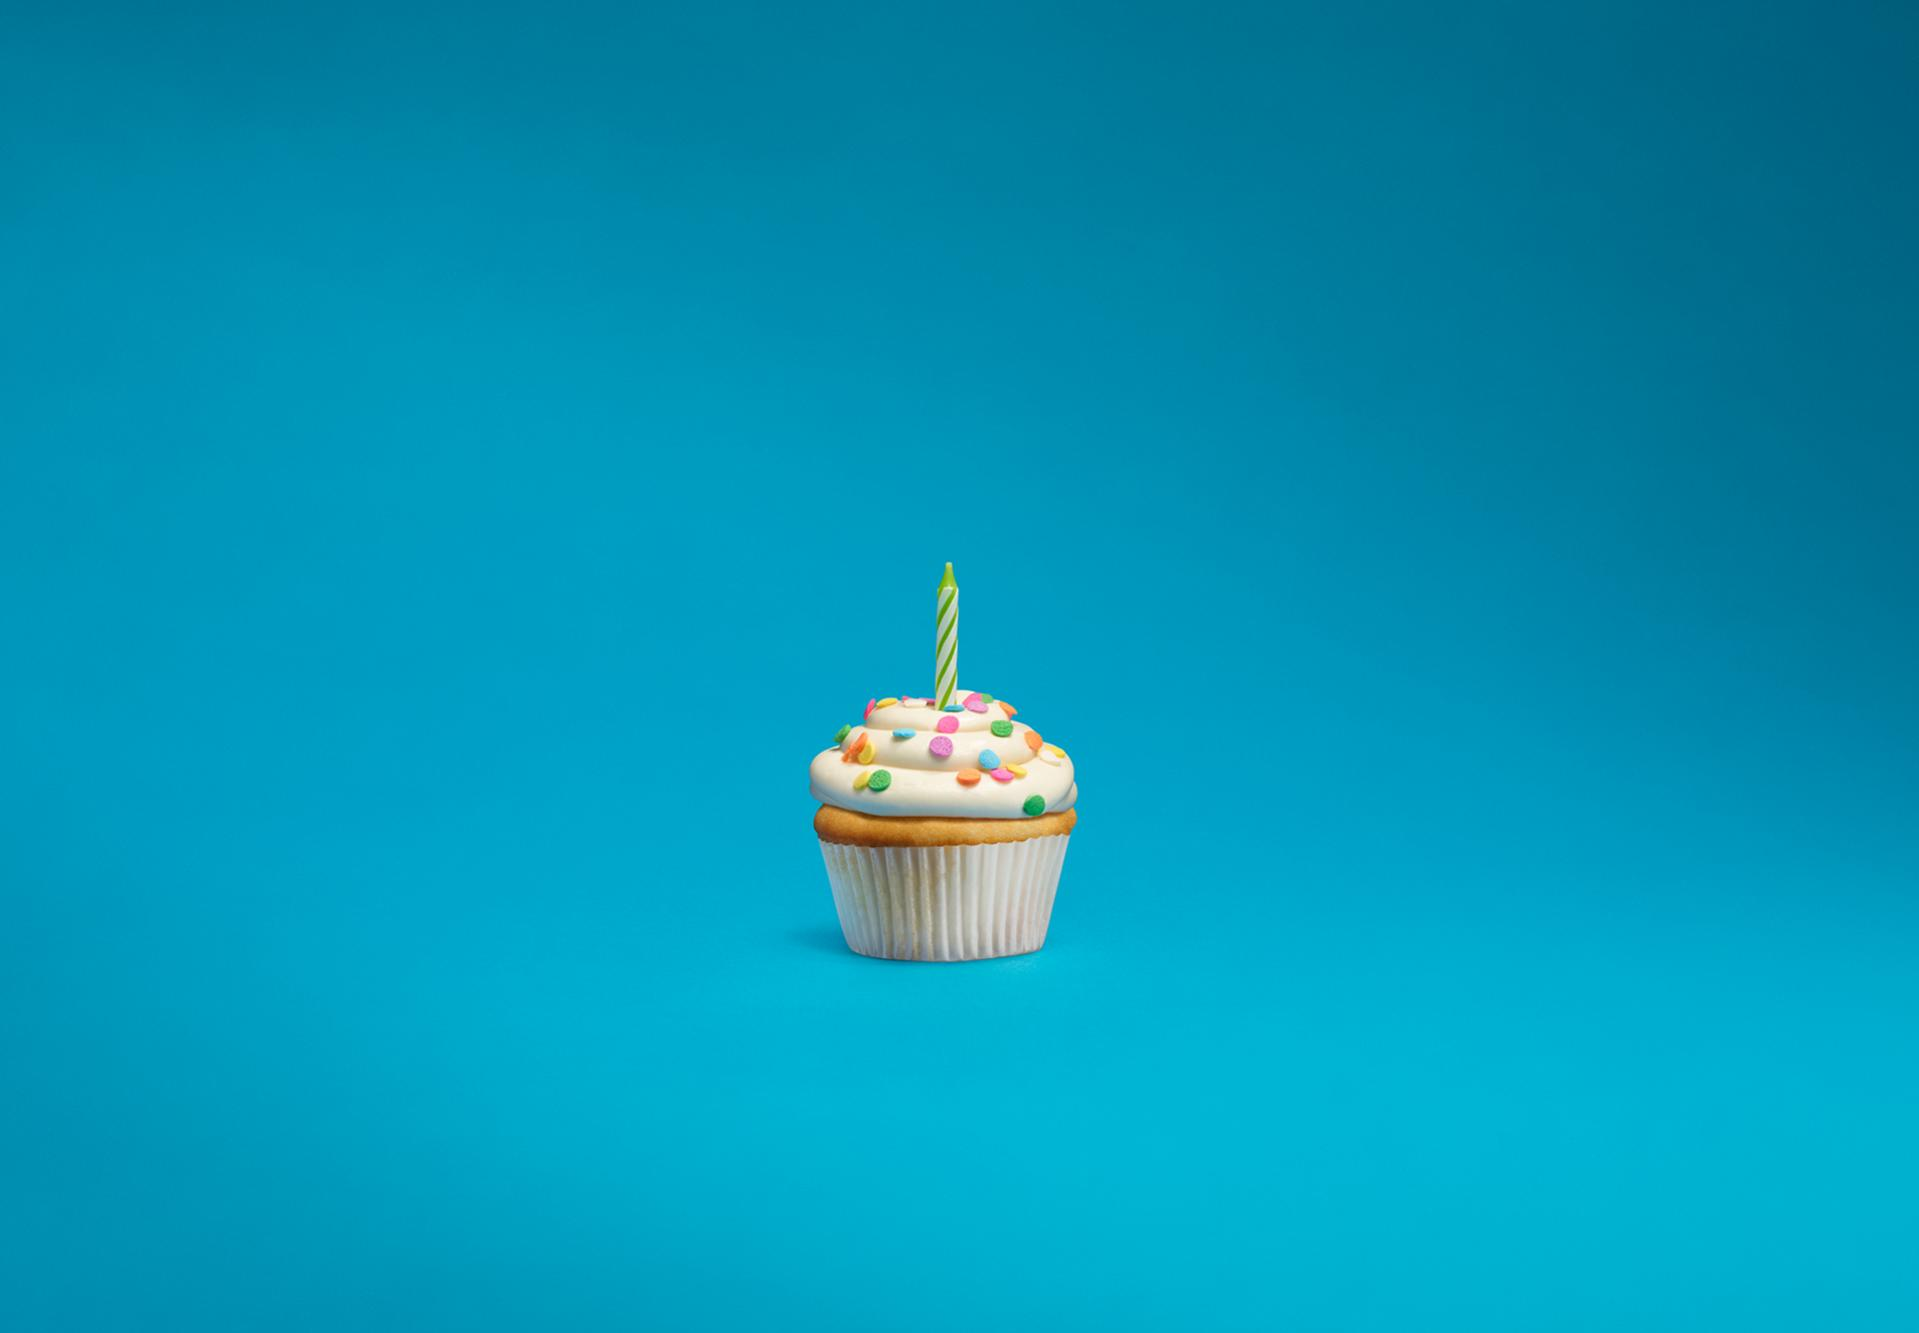 Android Cupcake 15 Wallpaper